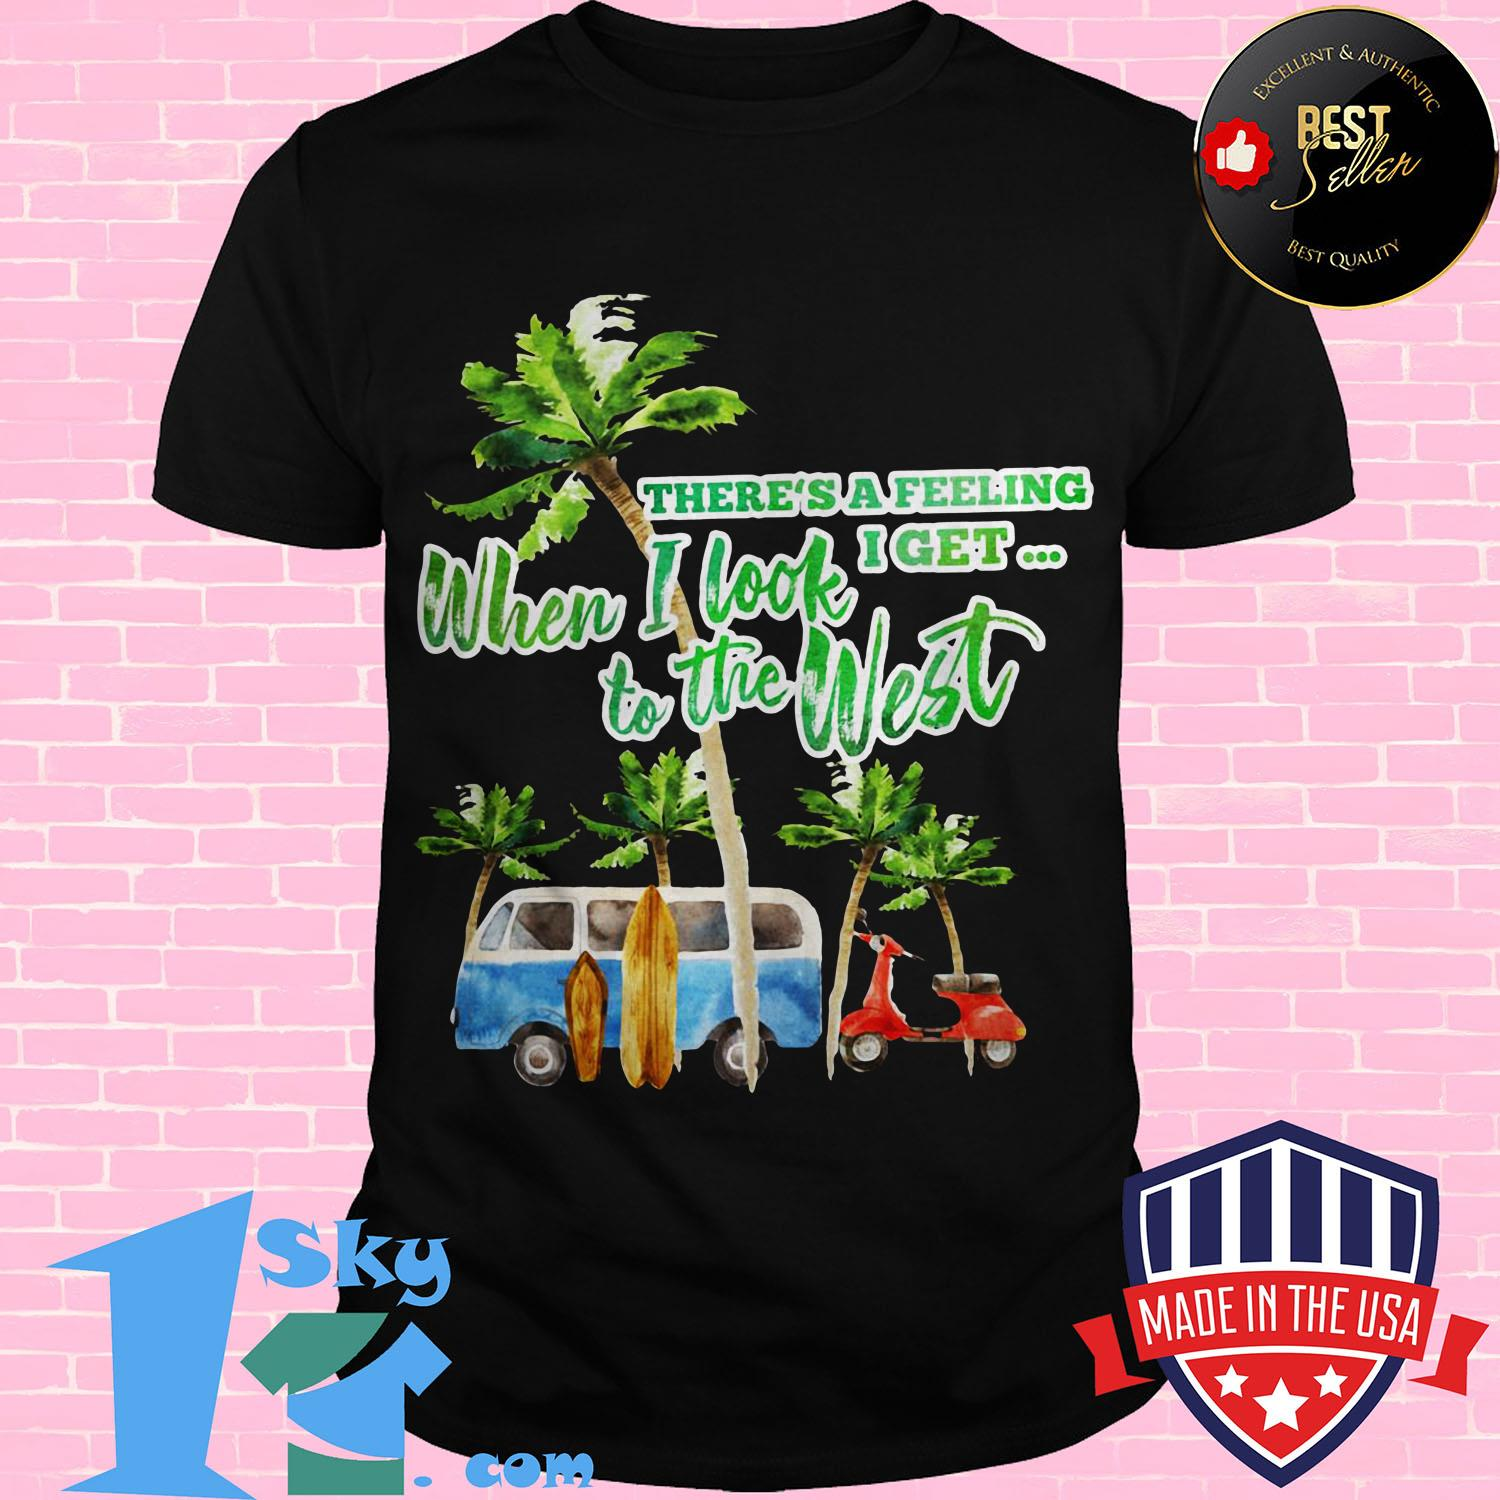 theres a feeling i get when i look to the west coconut tree vintage ladies tee - There's a feeling I get when I look to the West Coconut tree Vintage shirt